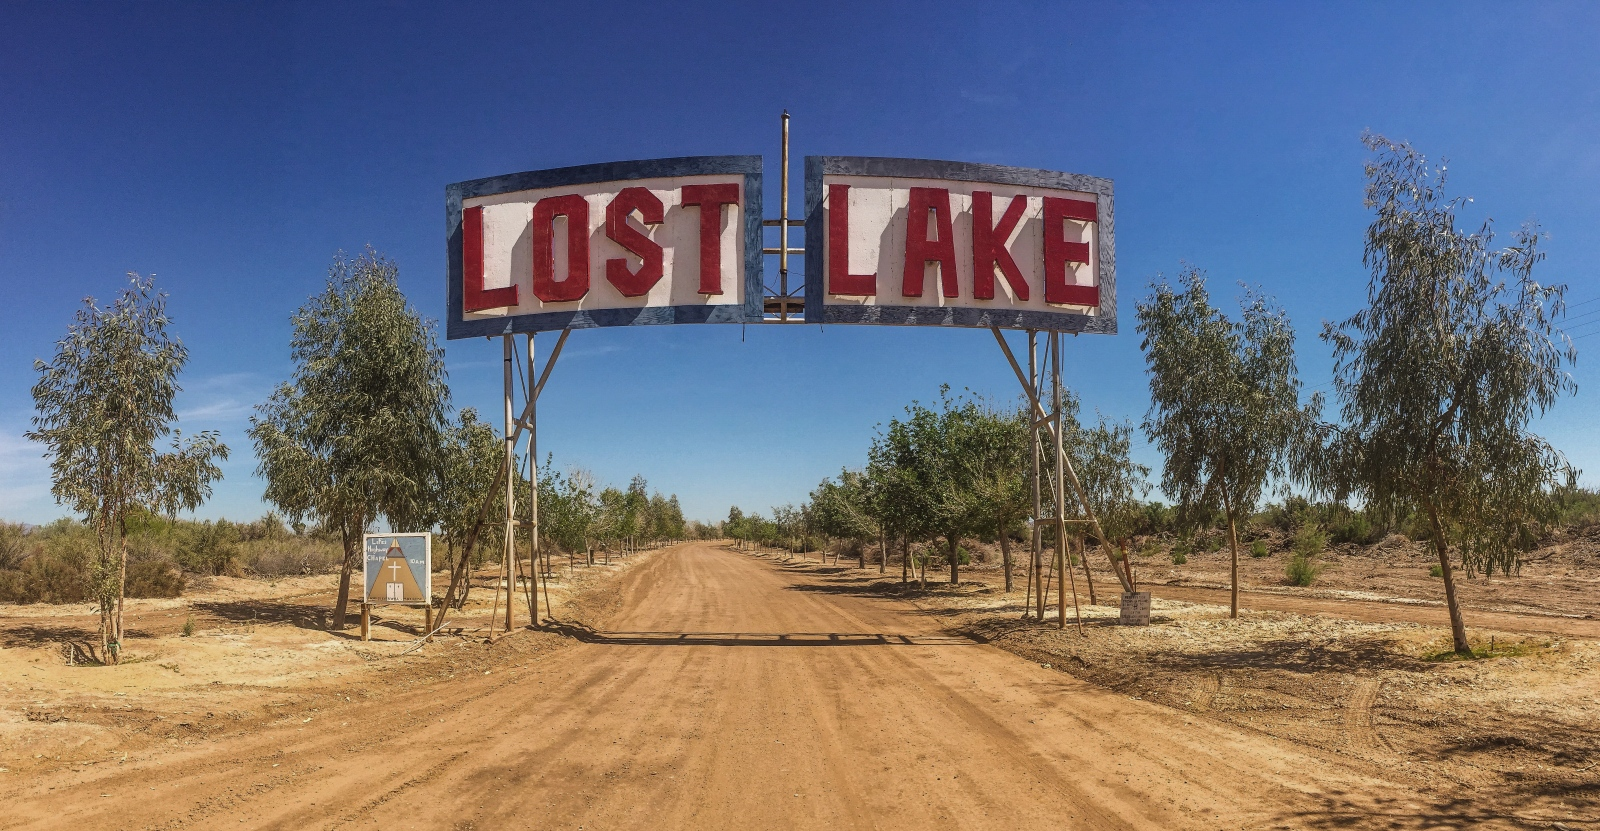 Riverside County, CA - Lost Lake is a resort off of Highway 95 on the Colorado River. The Colorado River is fed by the Sierra snow pack which is down by 50% this year and provides water to the seven states, including California, that surround it.